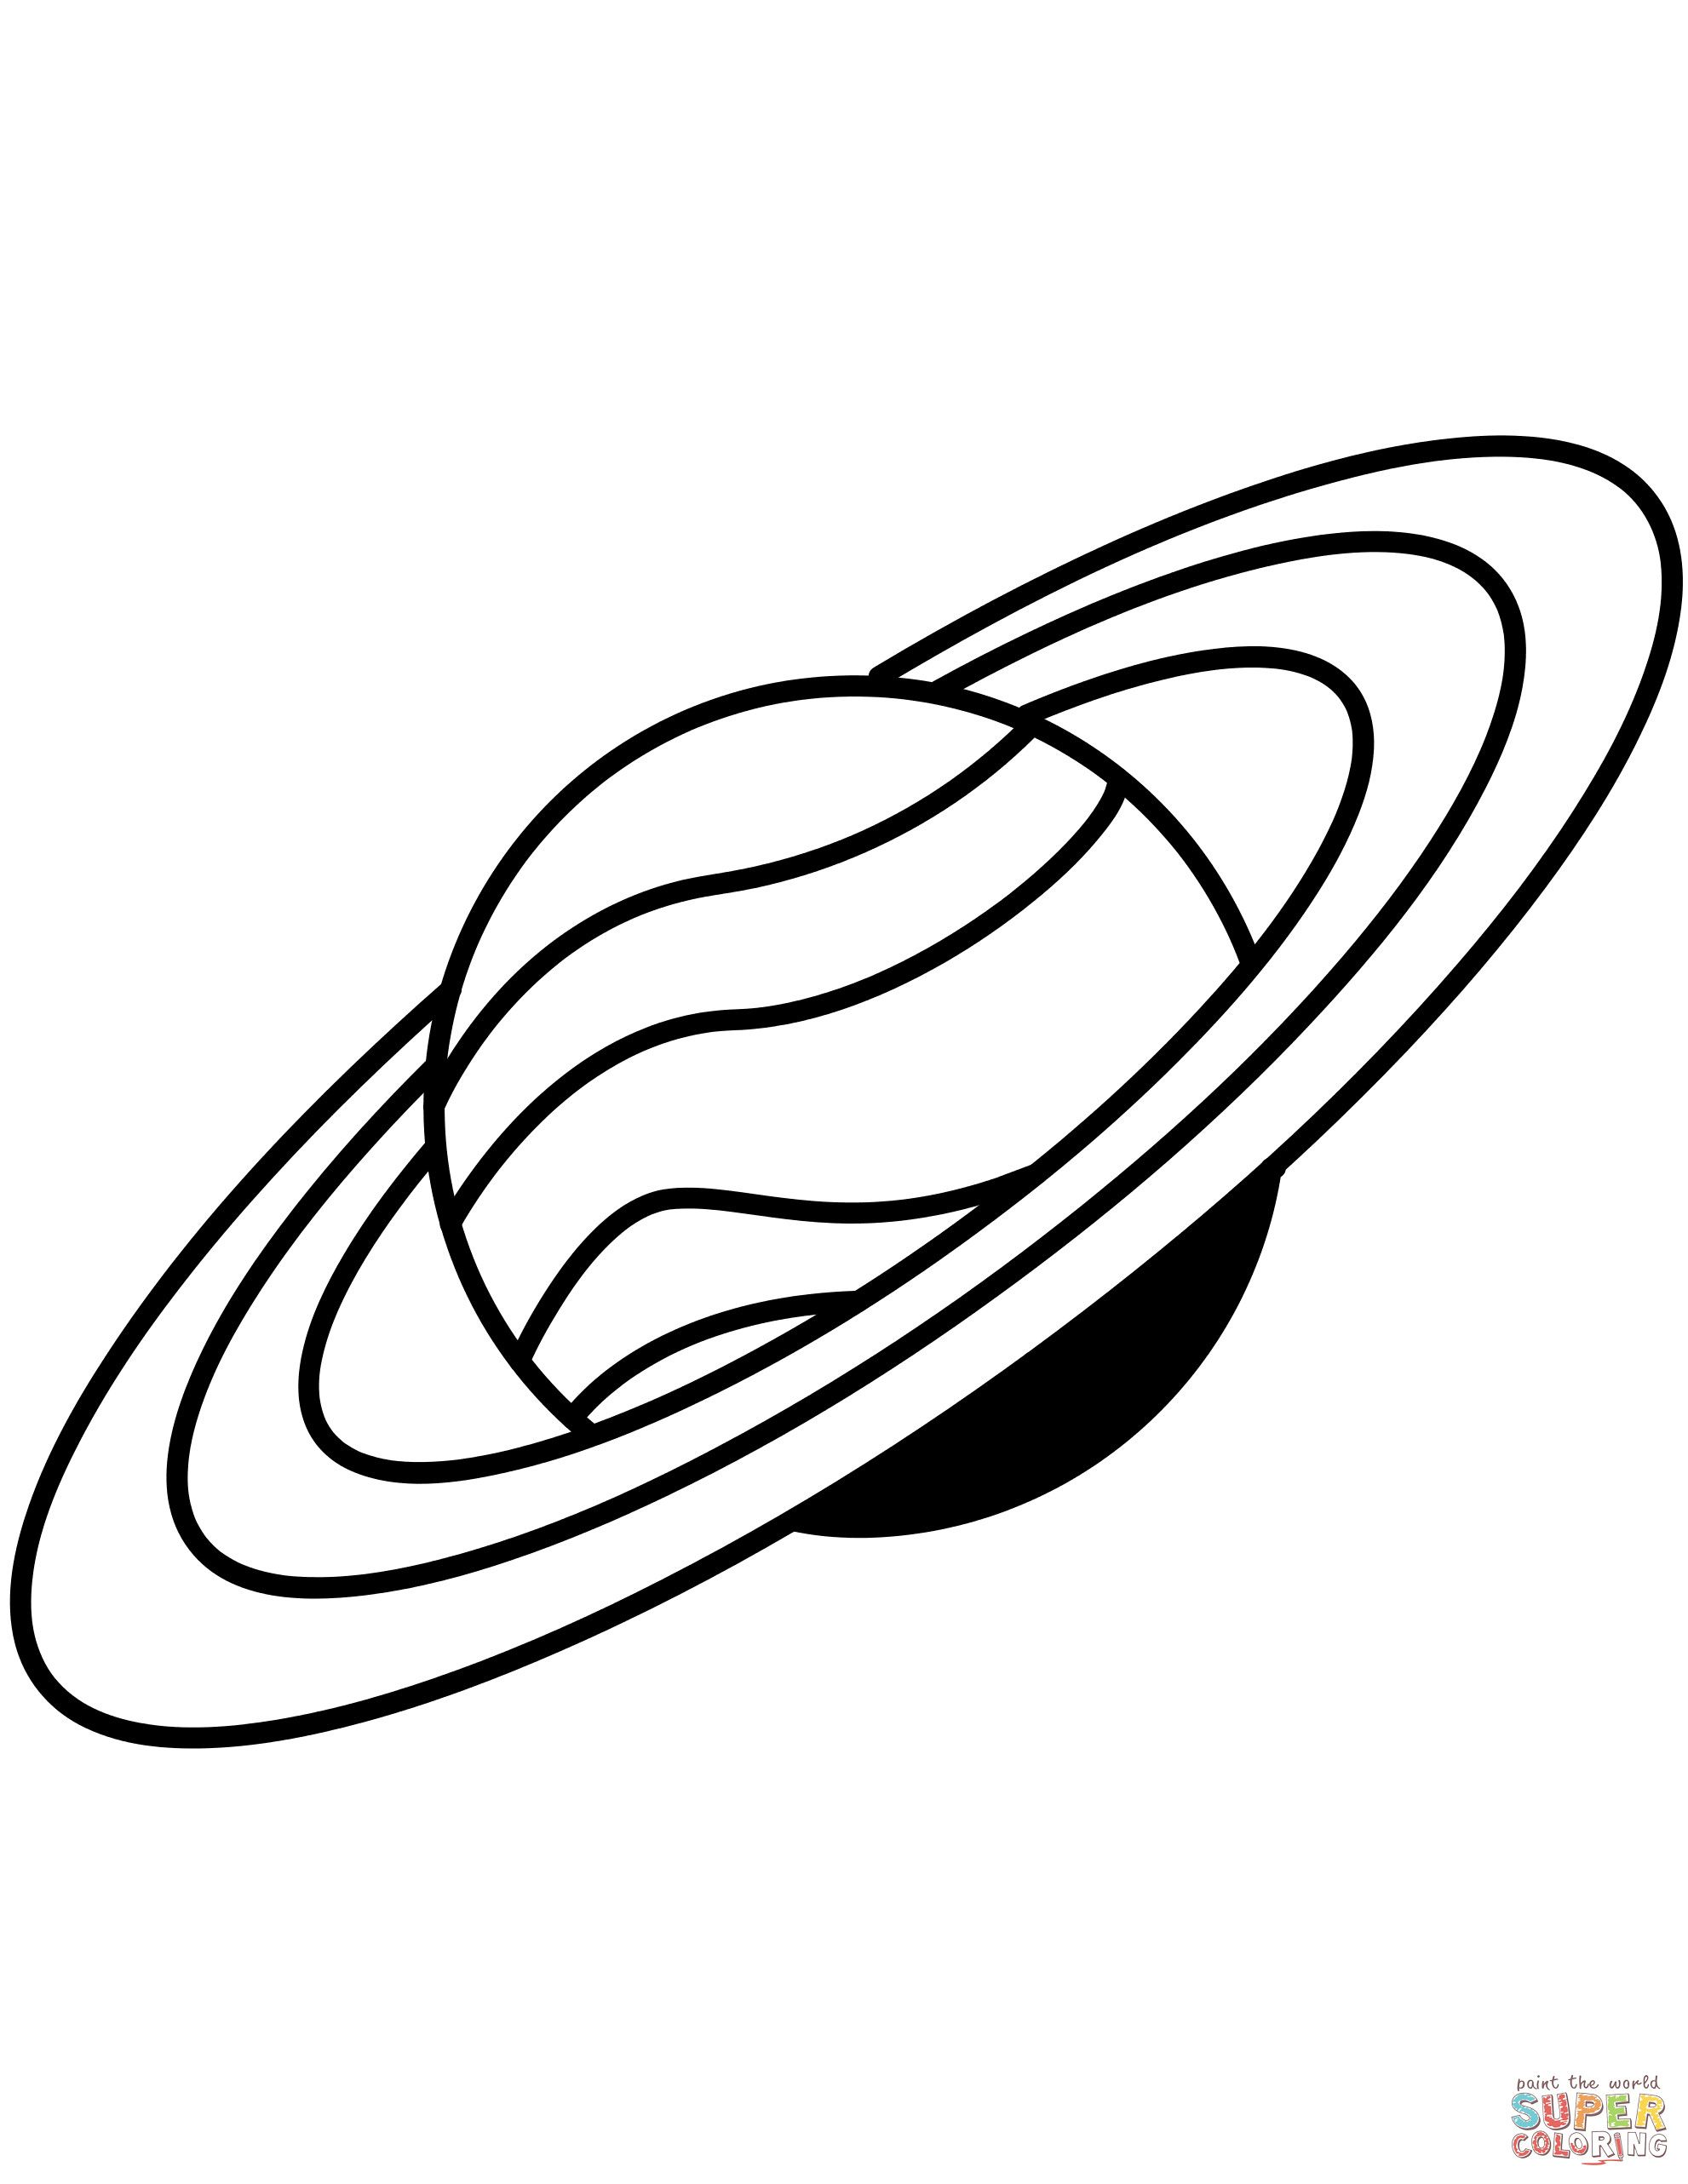 Solar System Coloring Pages Lovely Planets Coloring Pages